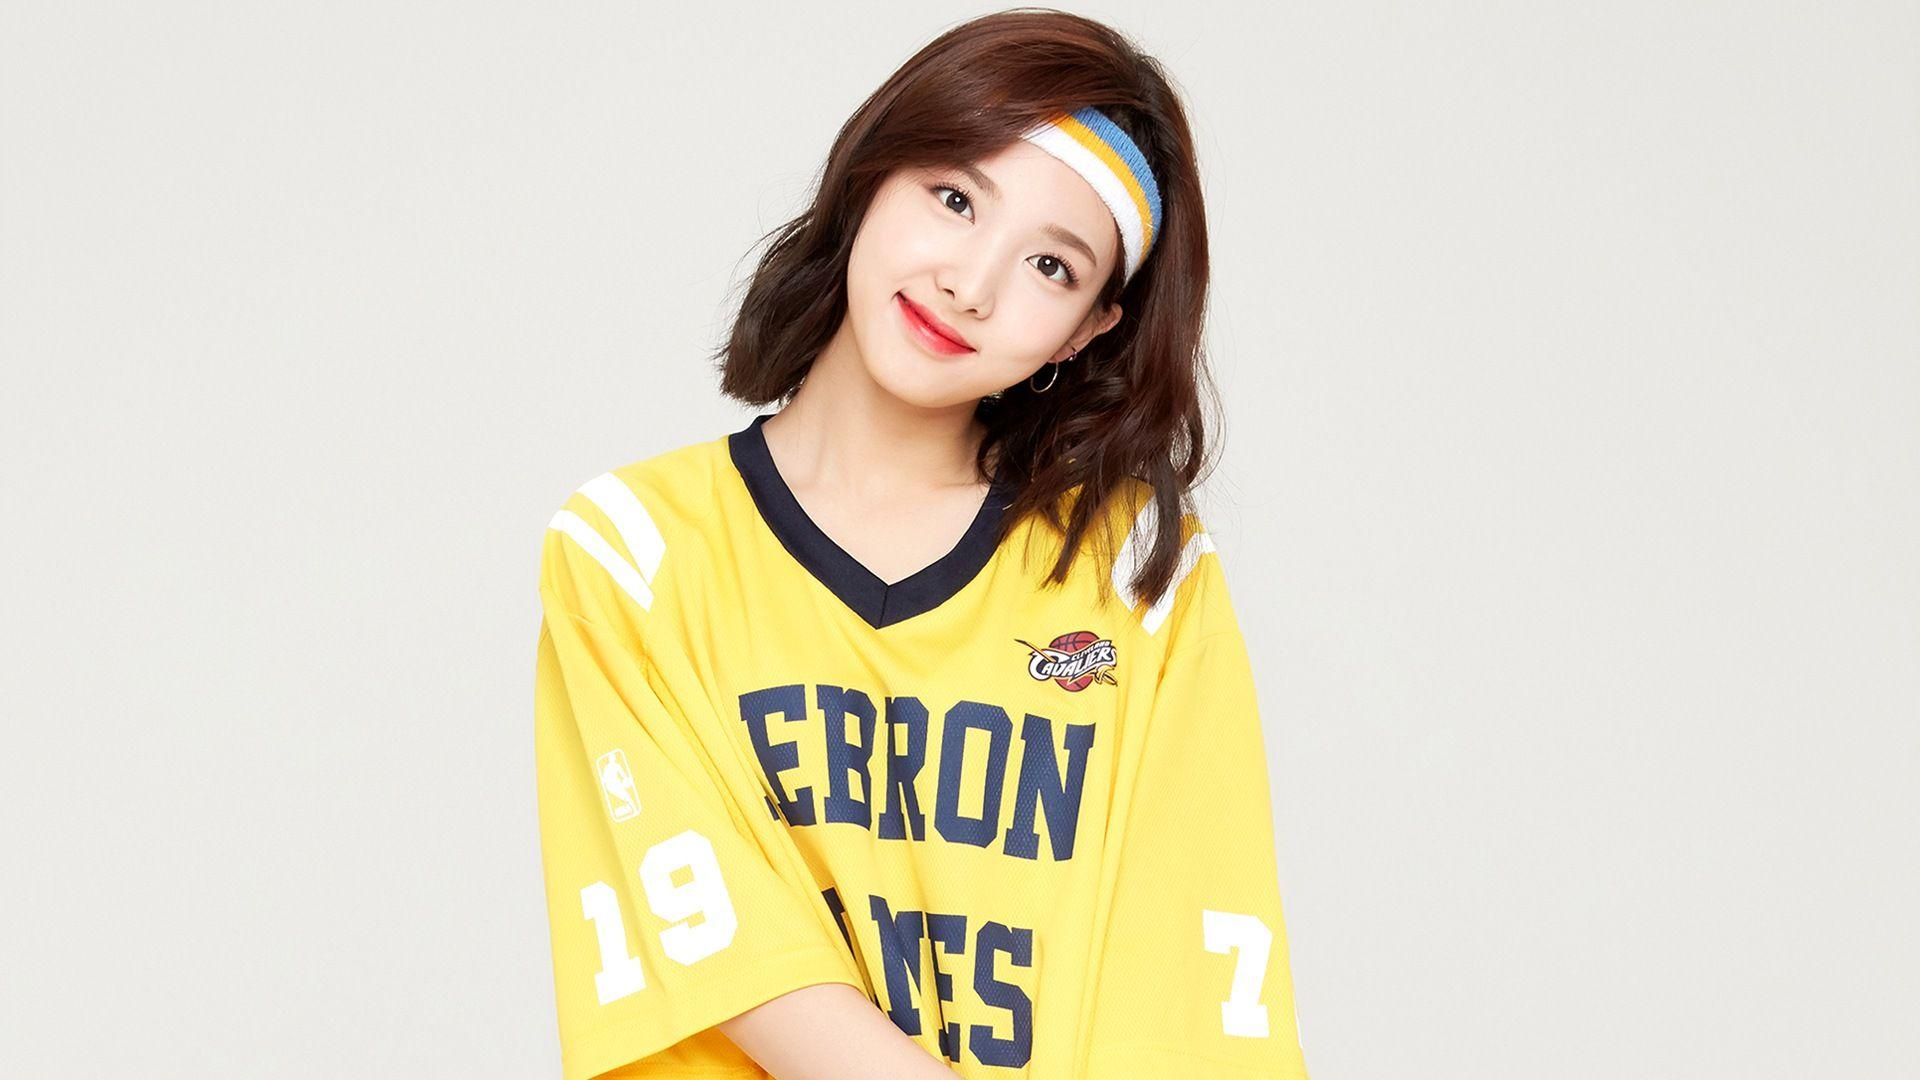 Twice Nayeon Wallpapers - Wallpaper Cave